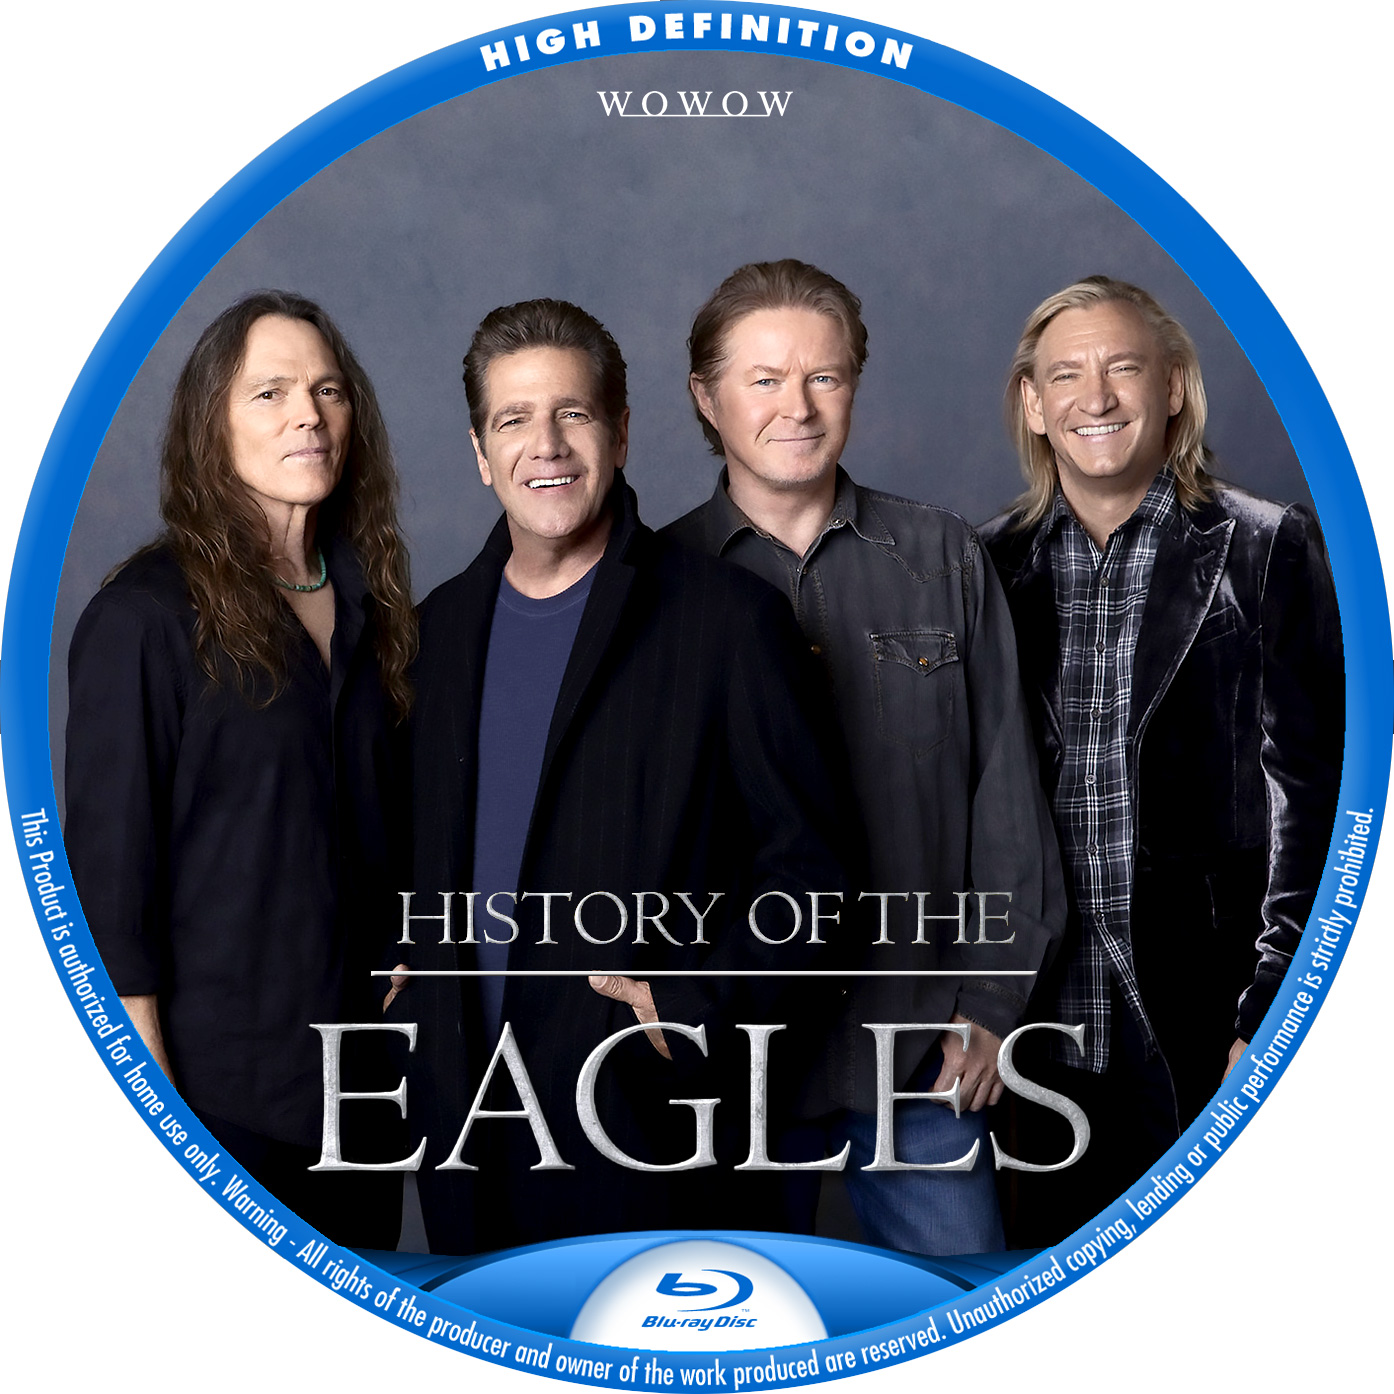 EAGLES HISTORY BDラベル